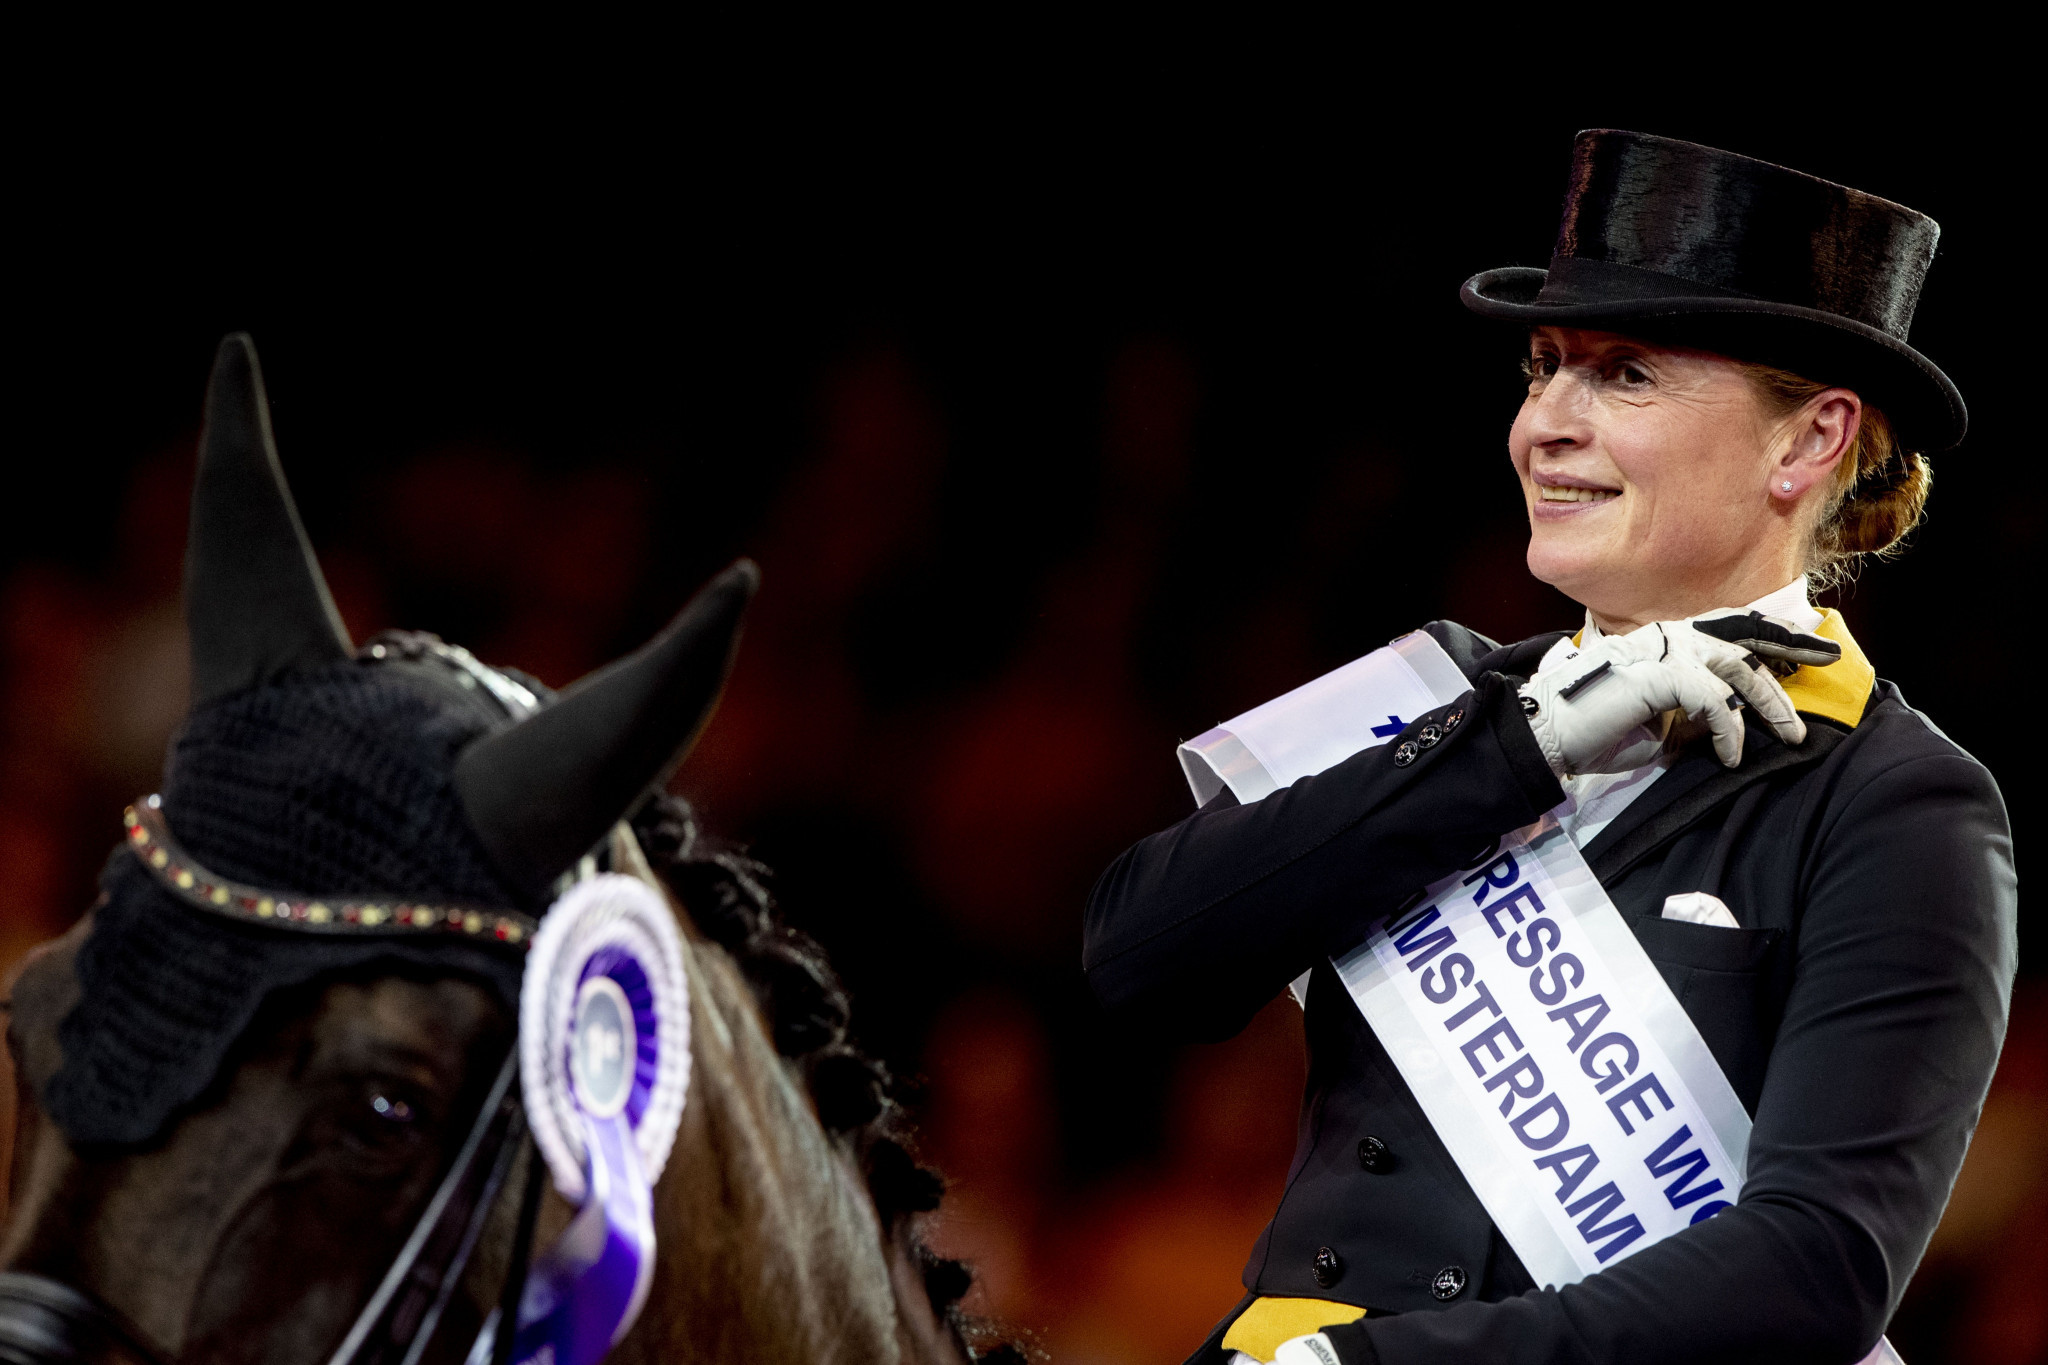 German riders dominate podium at FEI Dressage World Cup in Amsterdam